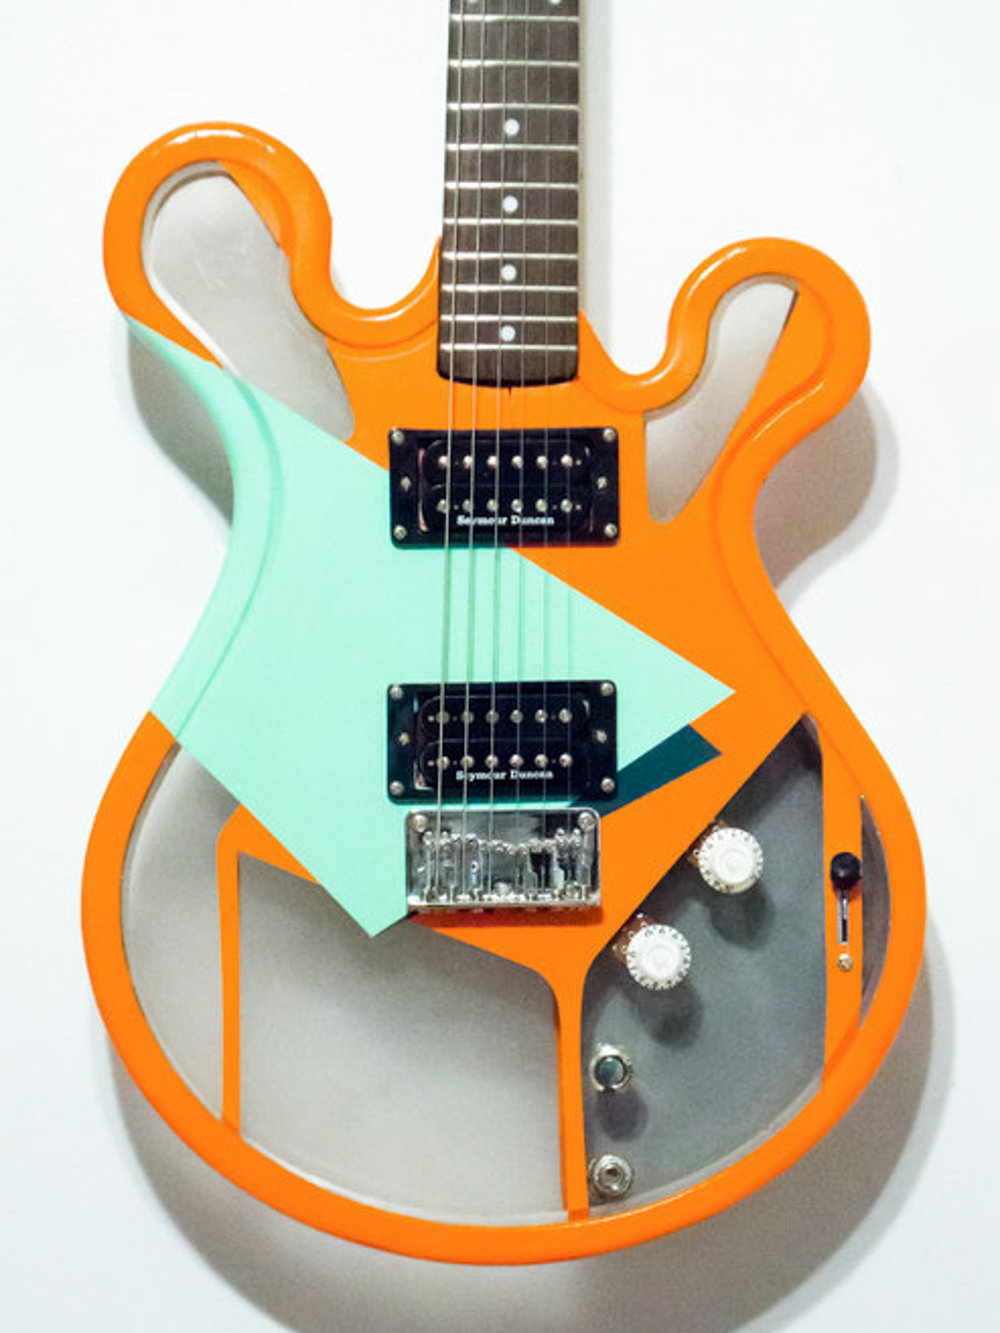 Gallo_Guitar_Bloom_Orange_Green_White_LED.jpg